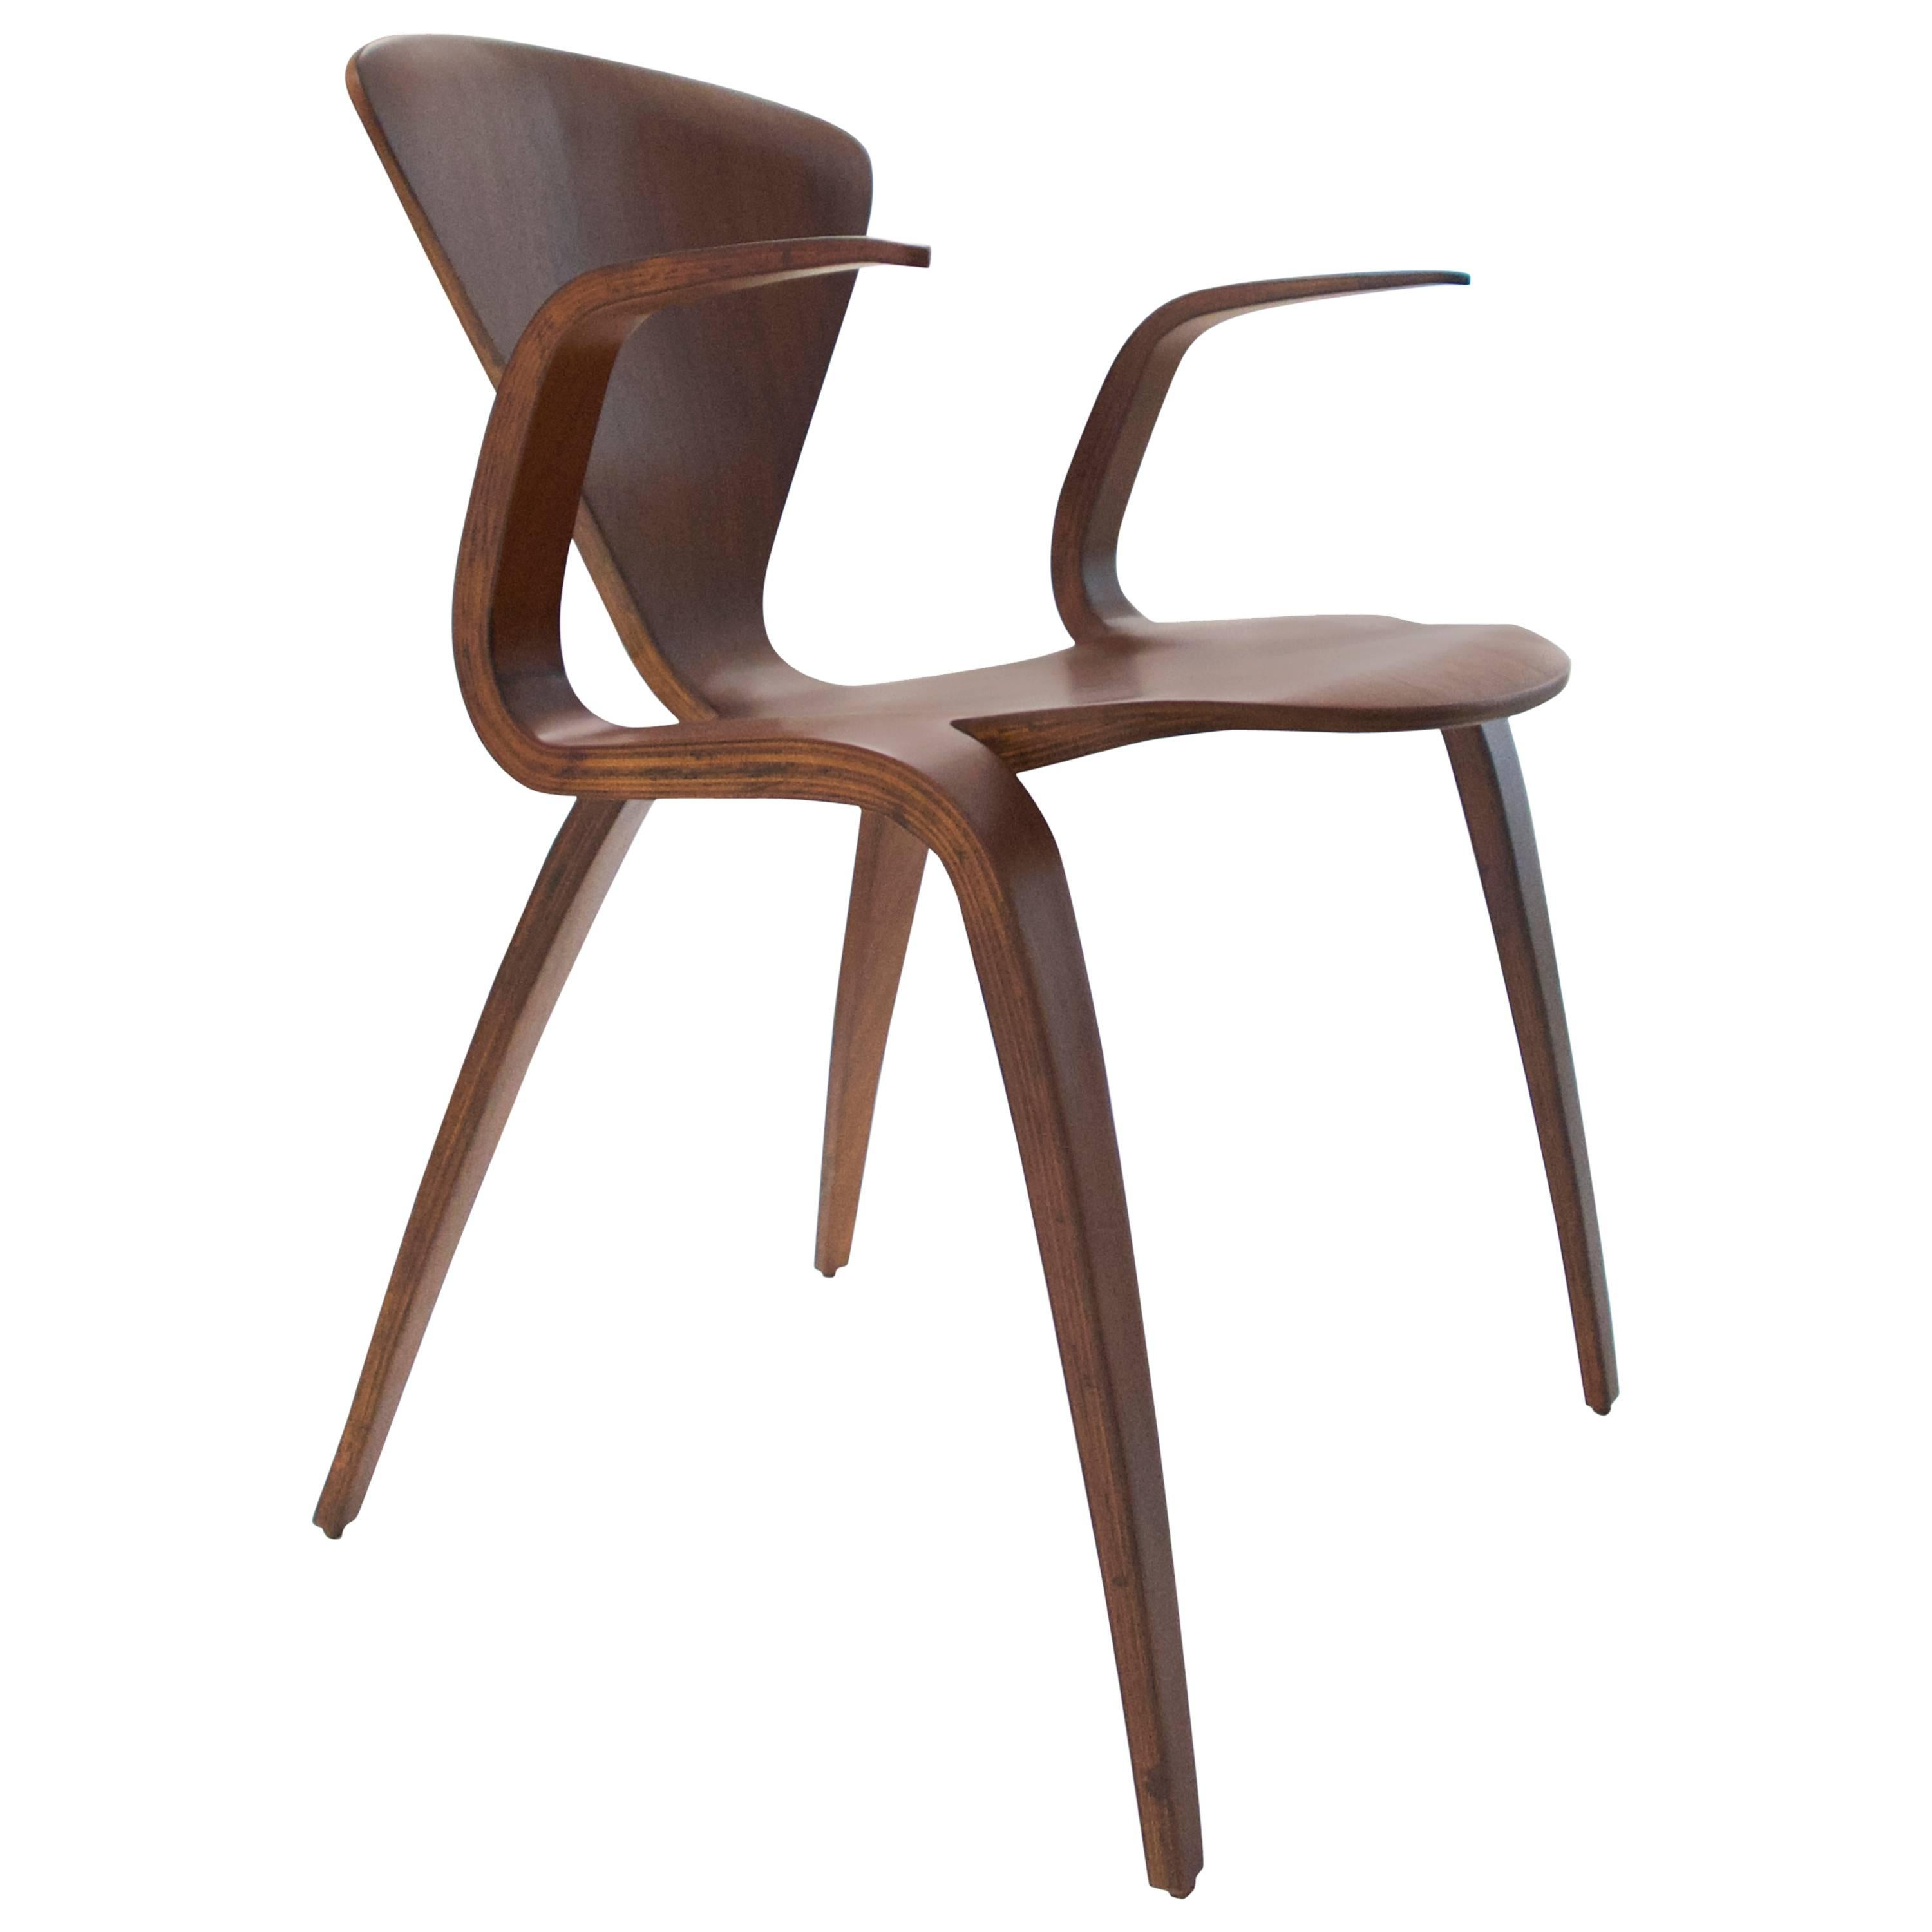 Norman Cherner Rare Prototype Armchair for Plycraft